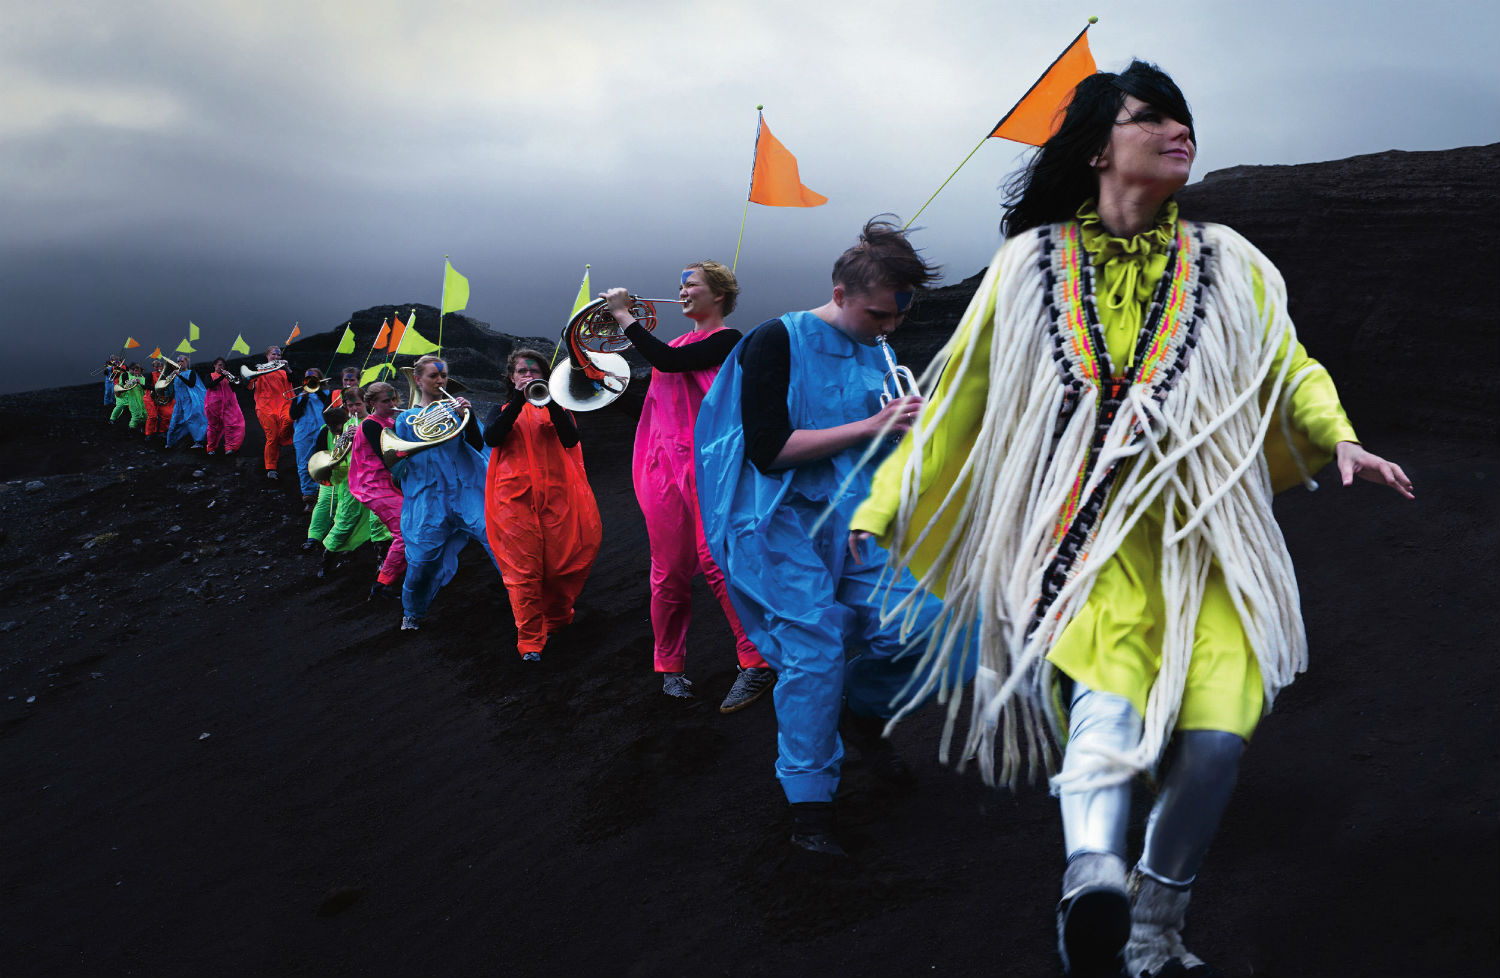 bjork fashion music colour iceland dazed confused